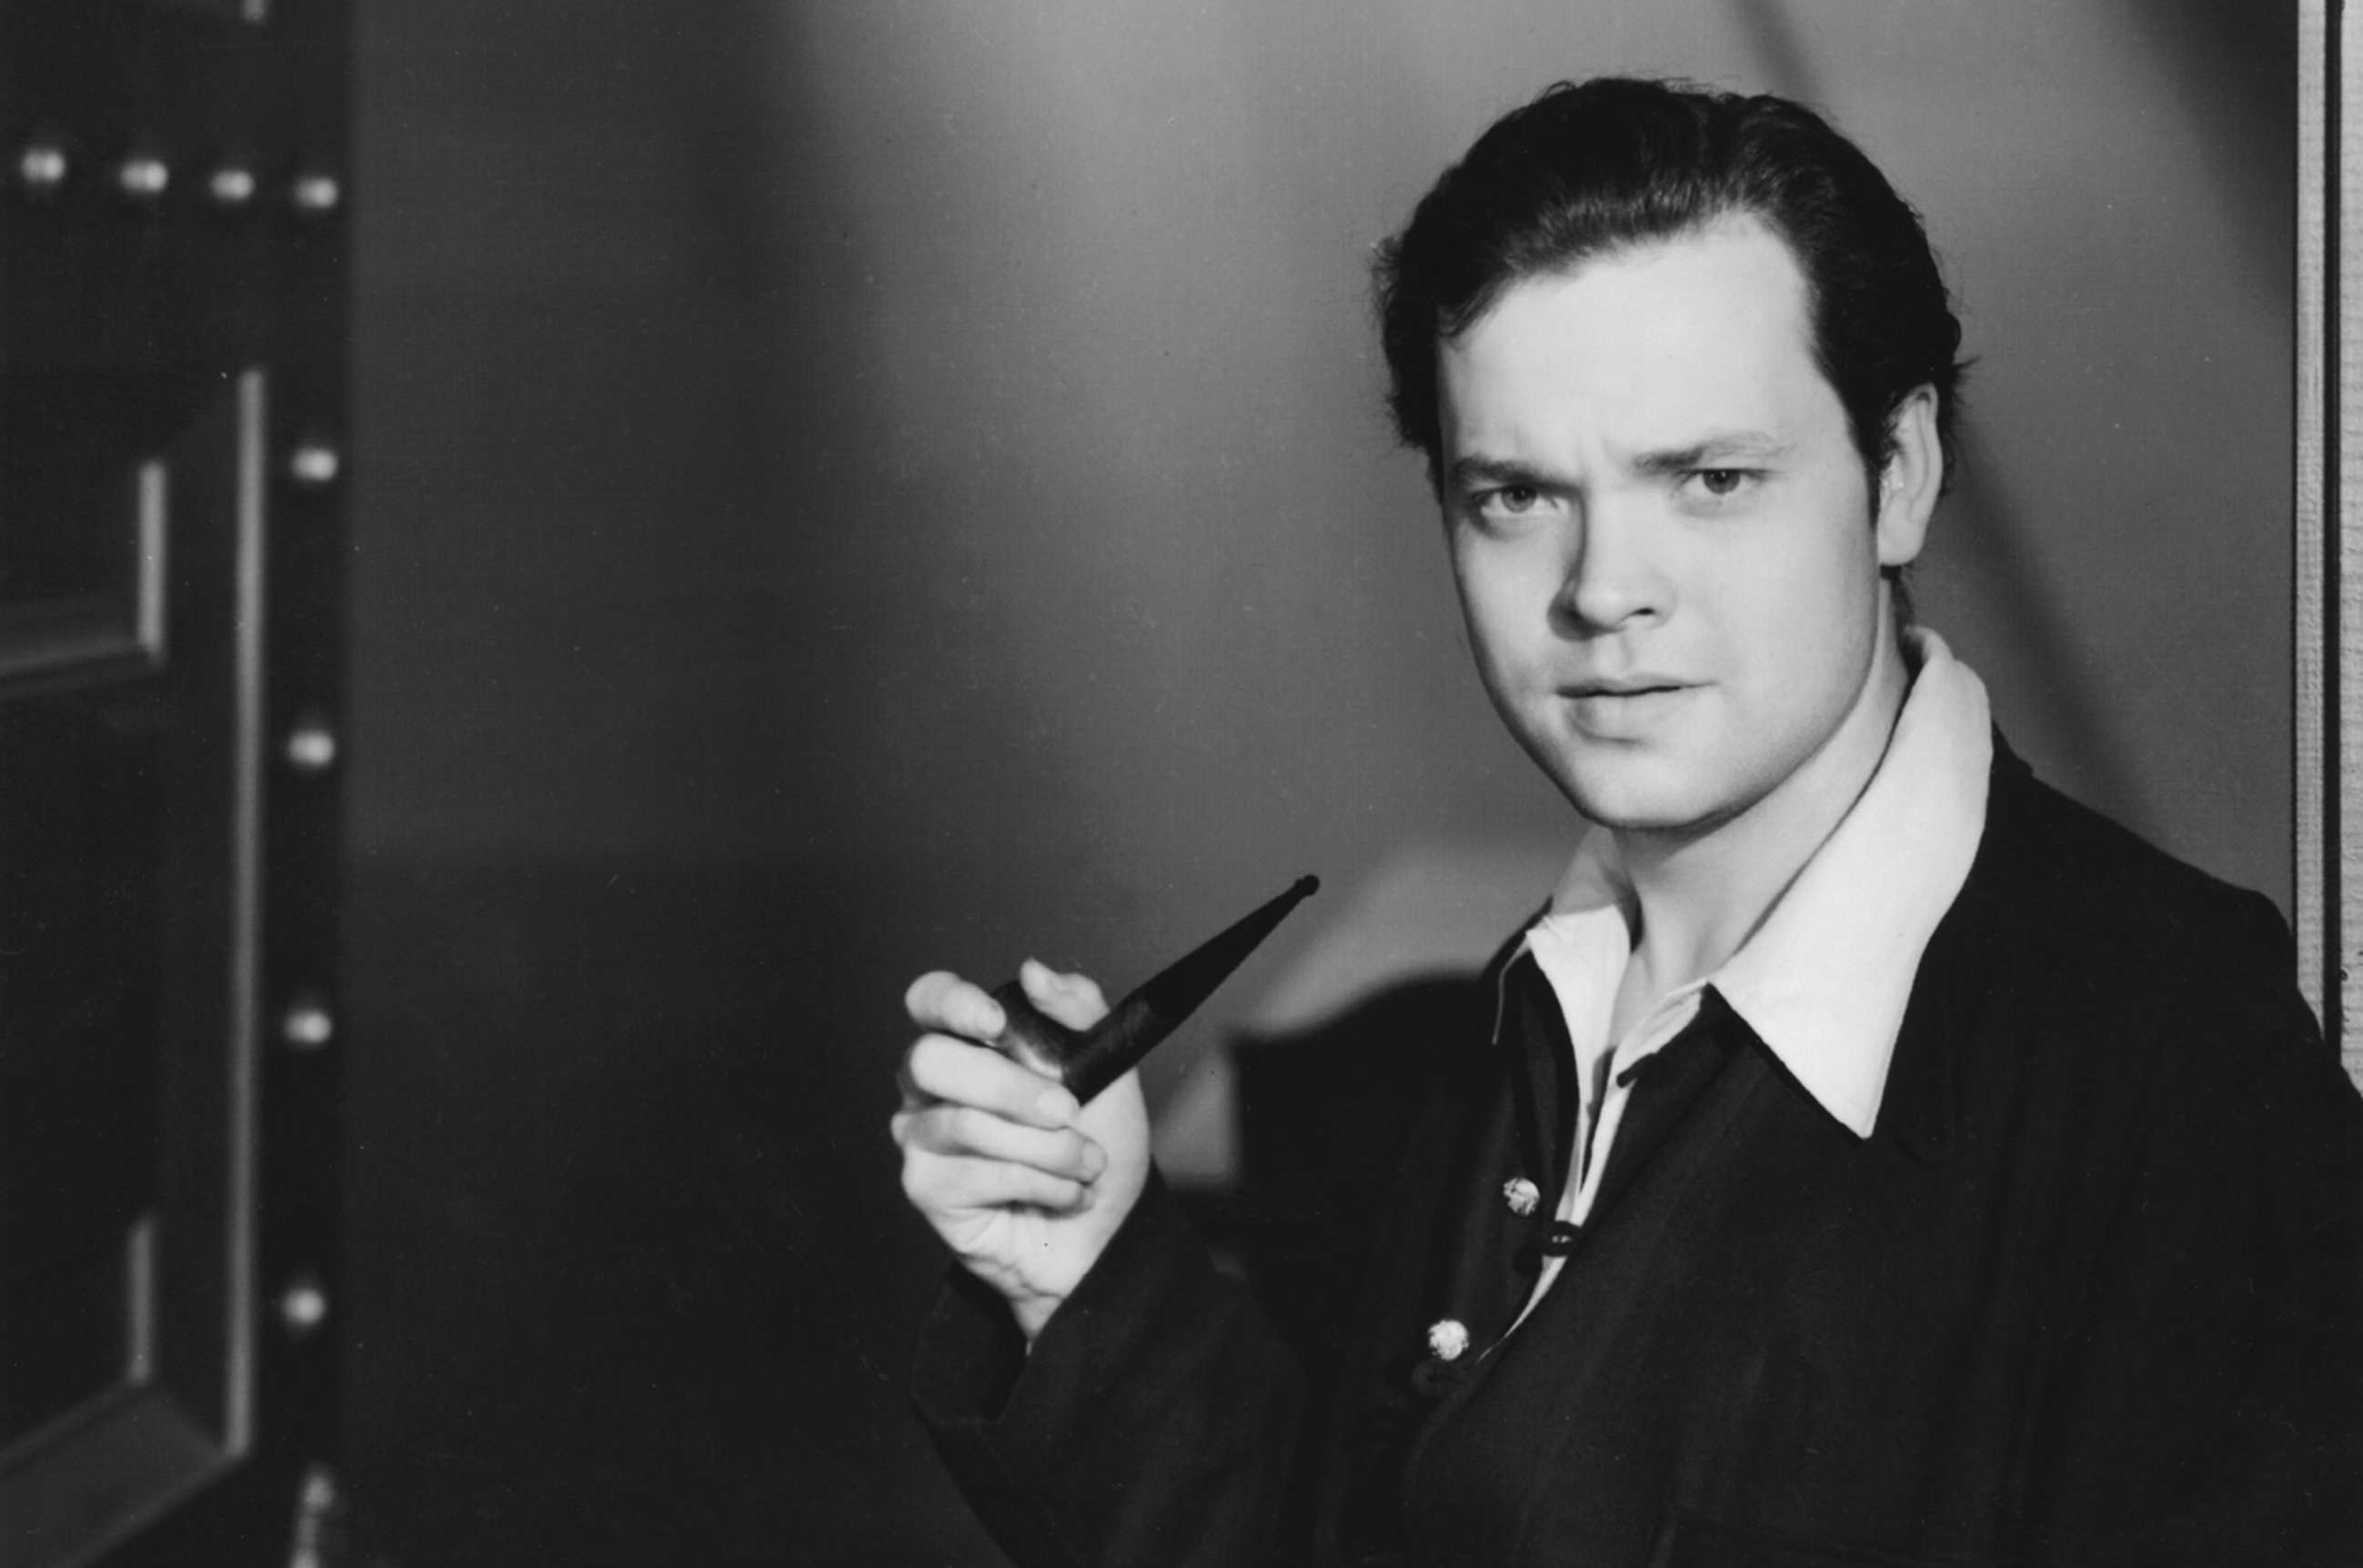 SIR EDWIN FLUFFER RECALLS ORSON WELLES